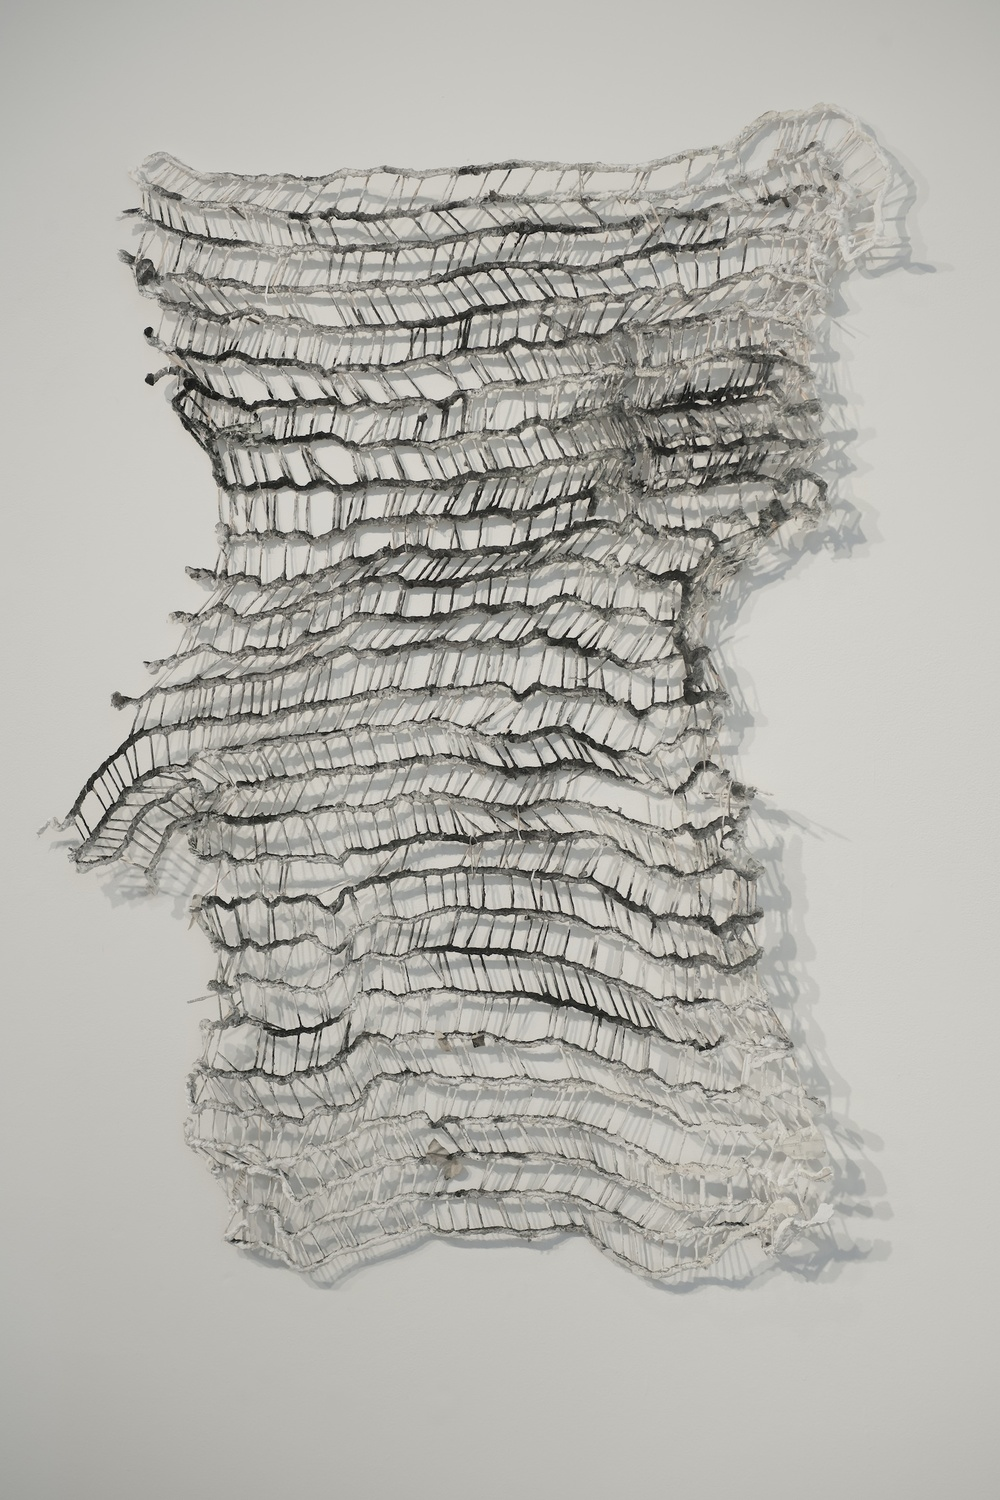 A Year With Utter and Woo,  2013  ,  wood, cotton, plaster, graphite, 46 x 38 x 6 in.